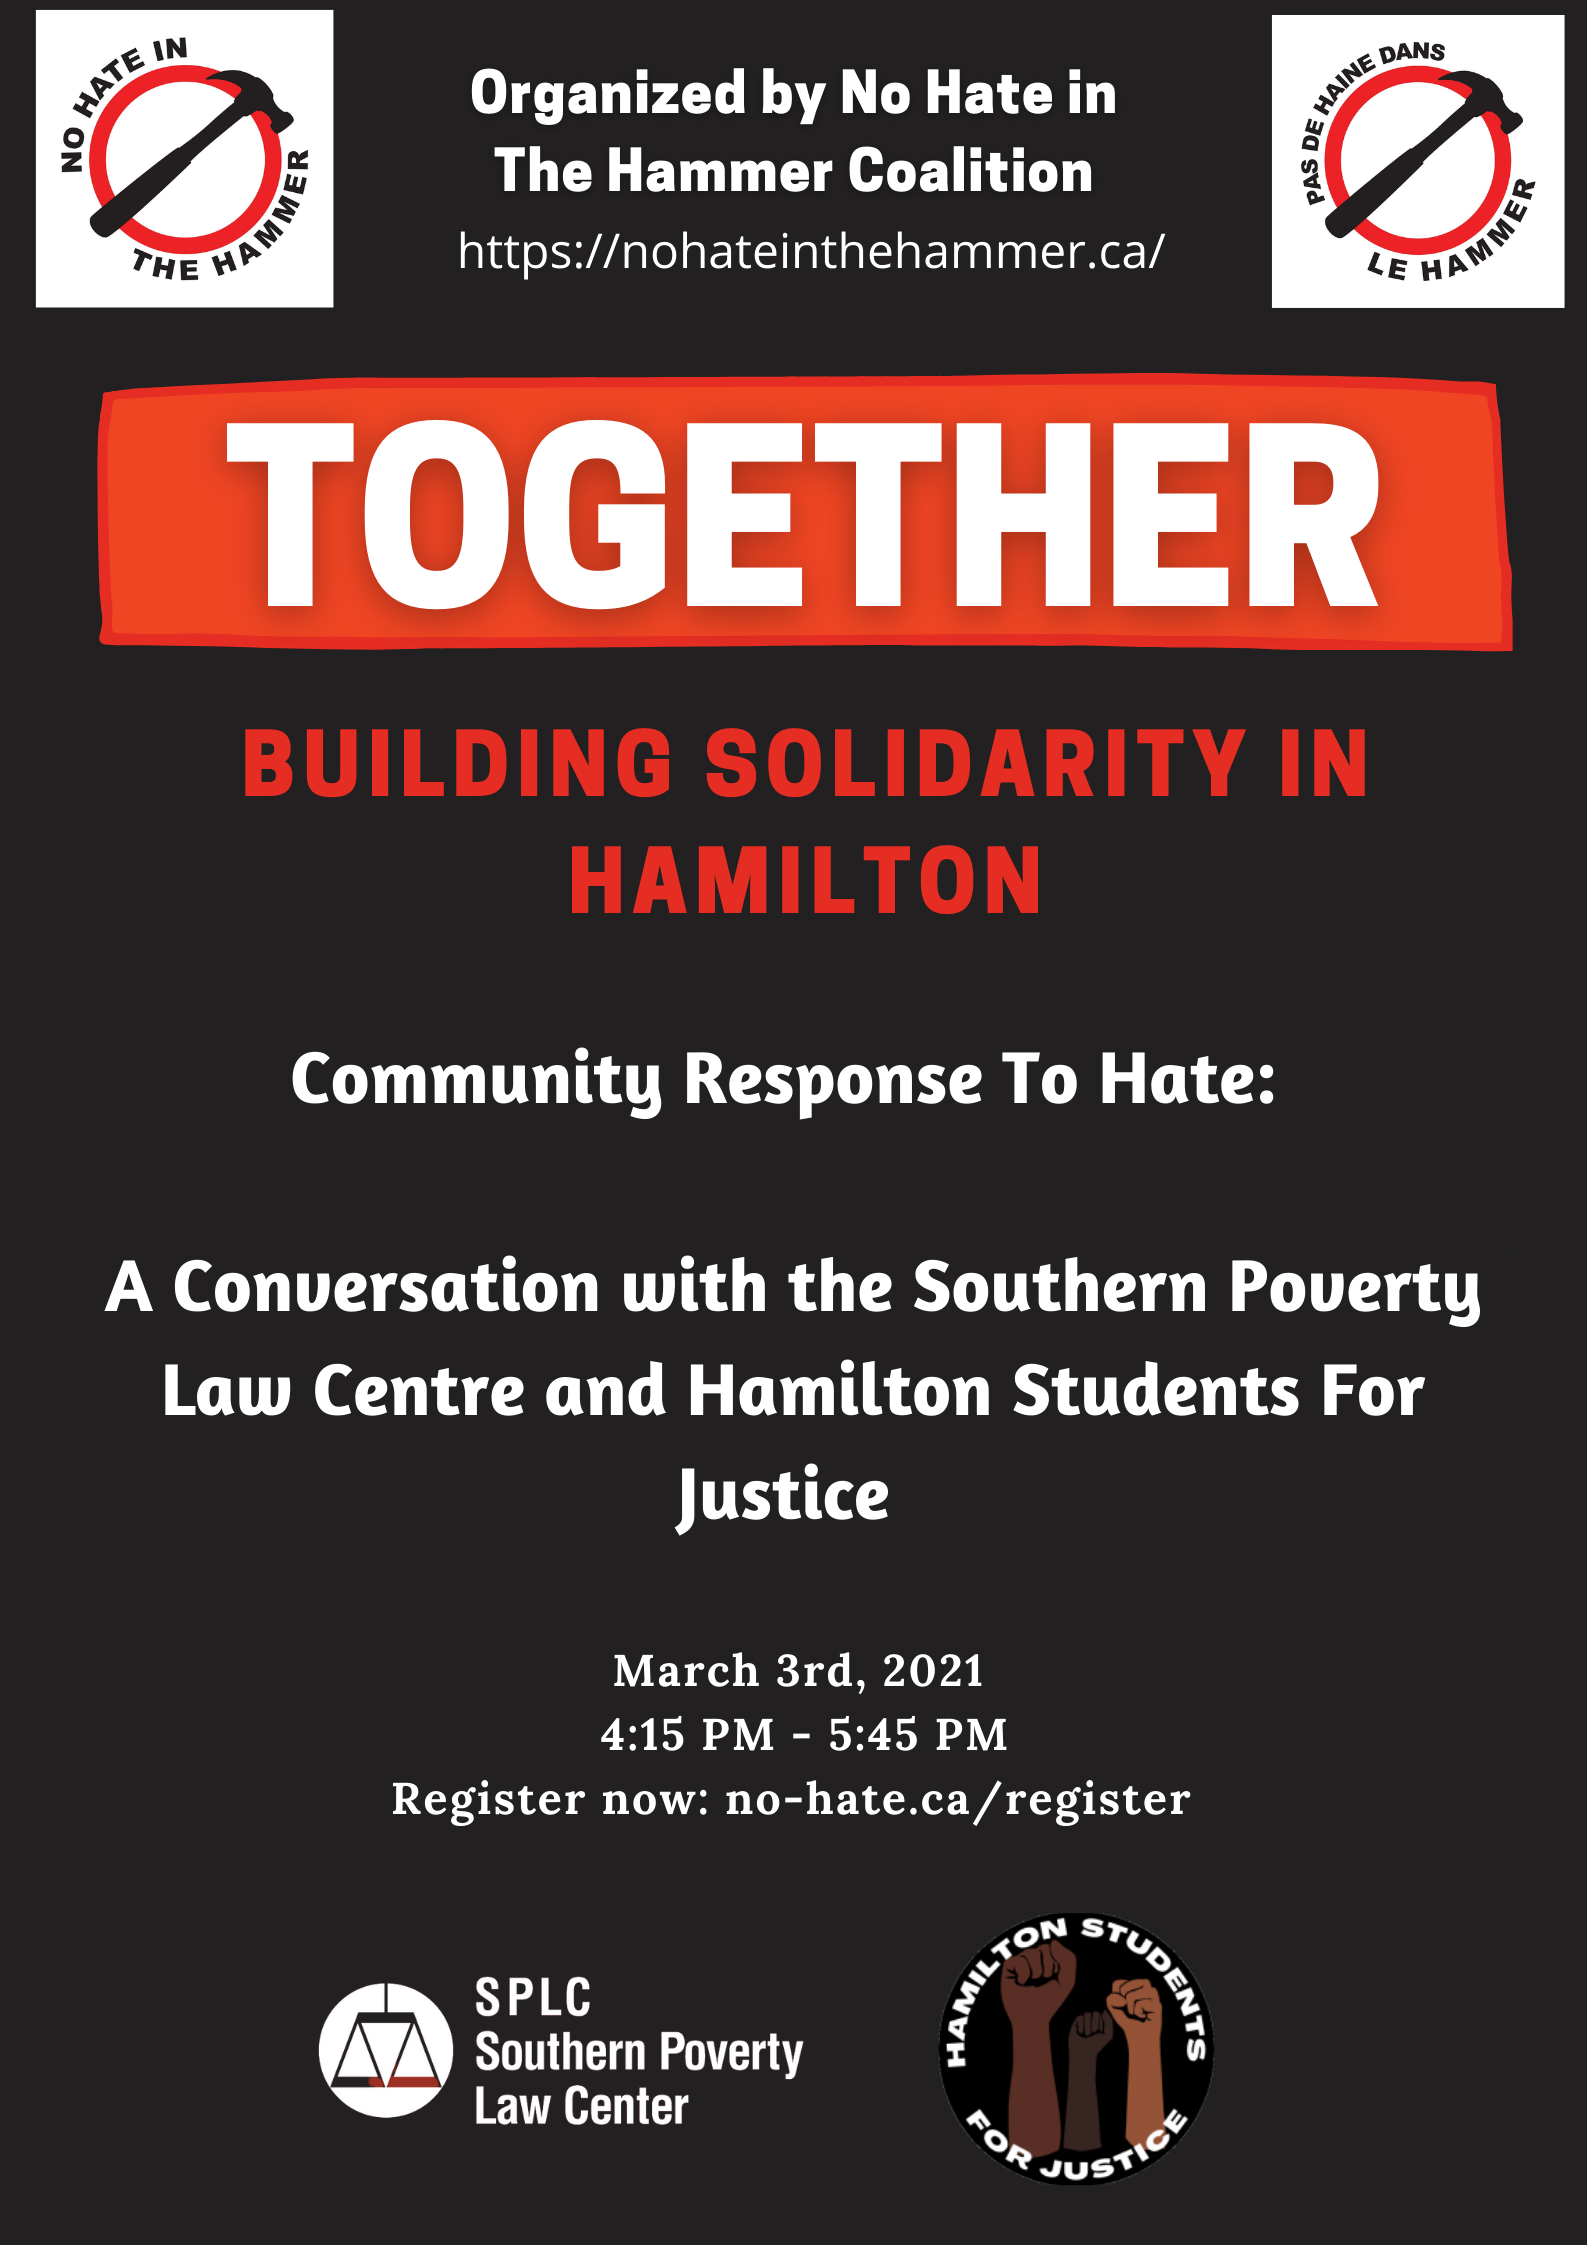 A Community Response to Hate (Mar 3)